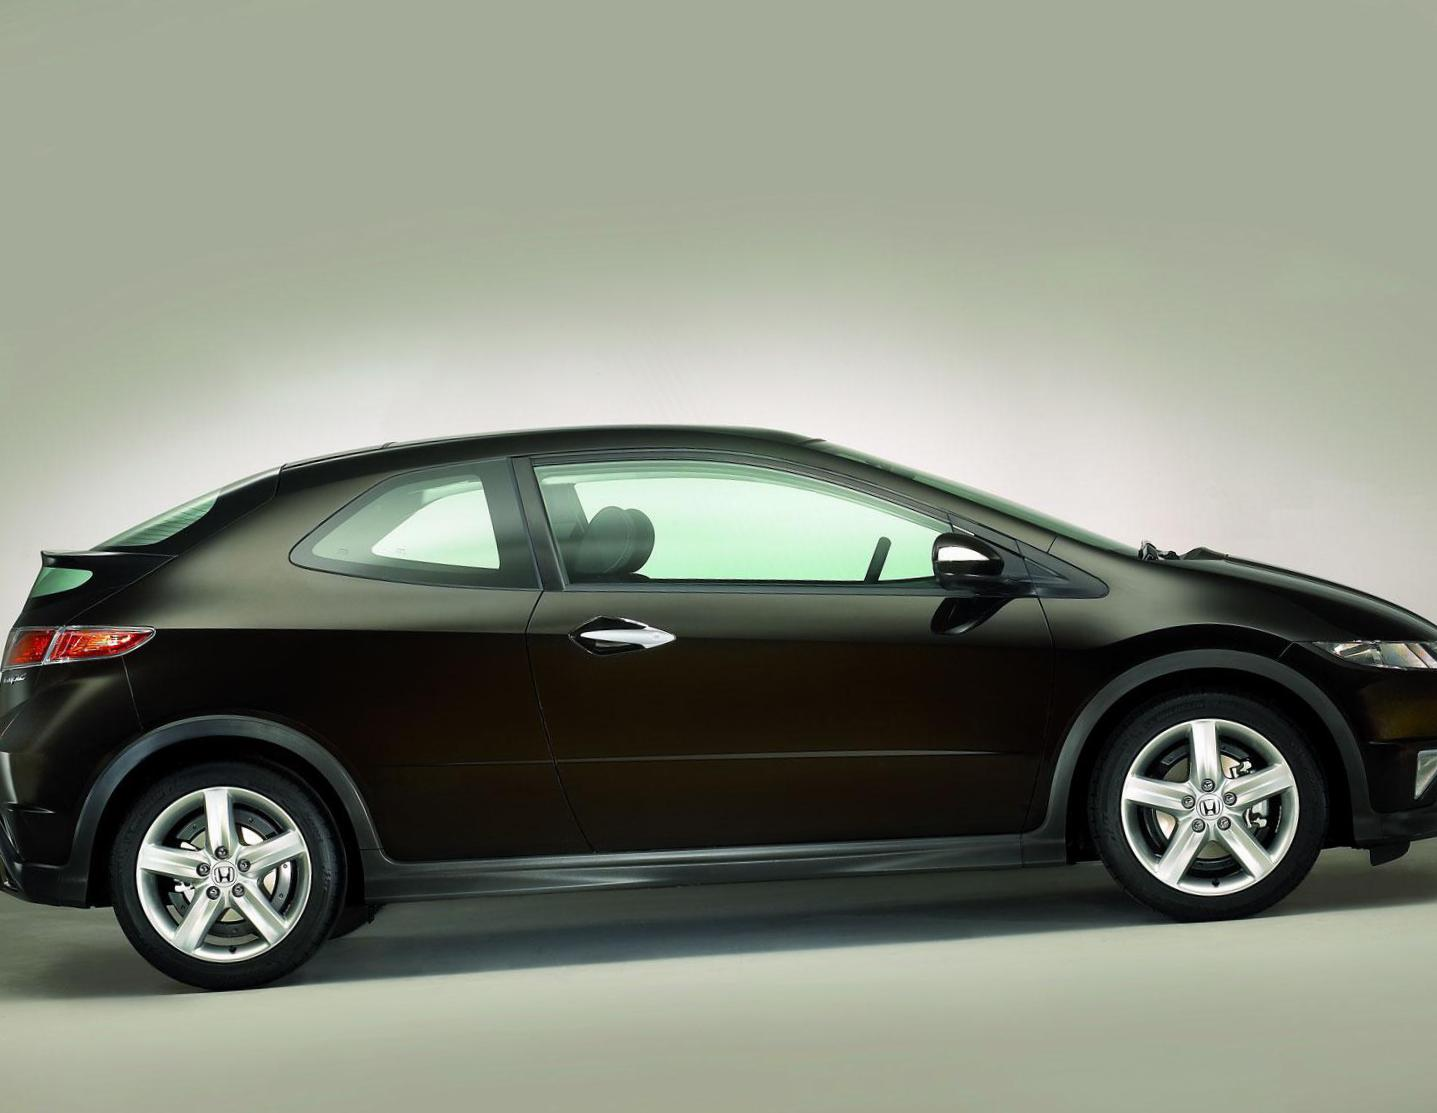 Honda Civic Type S parts sedan